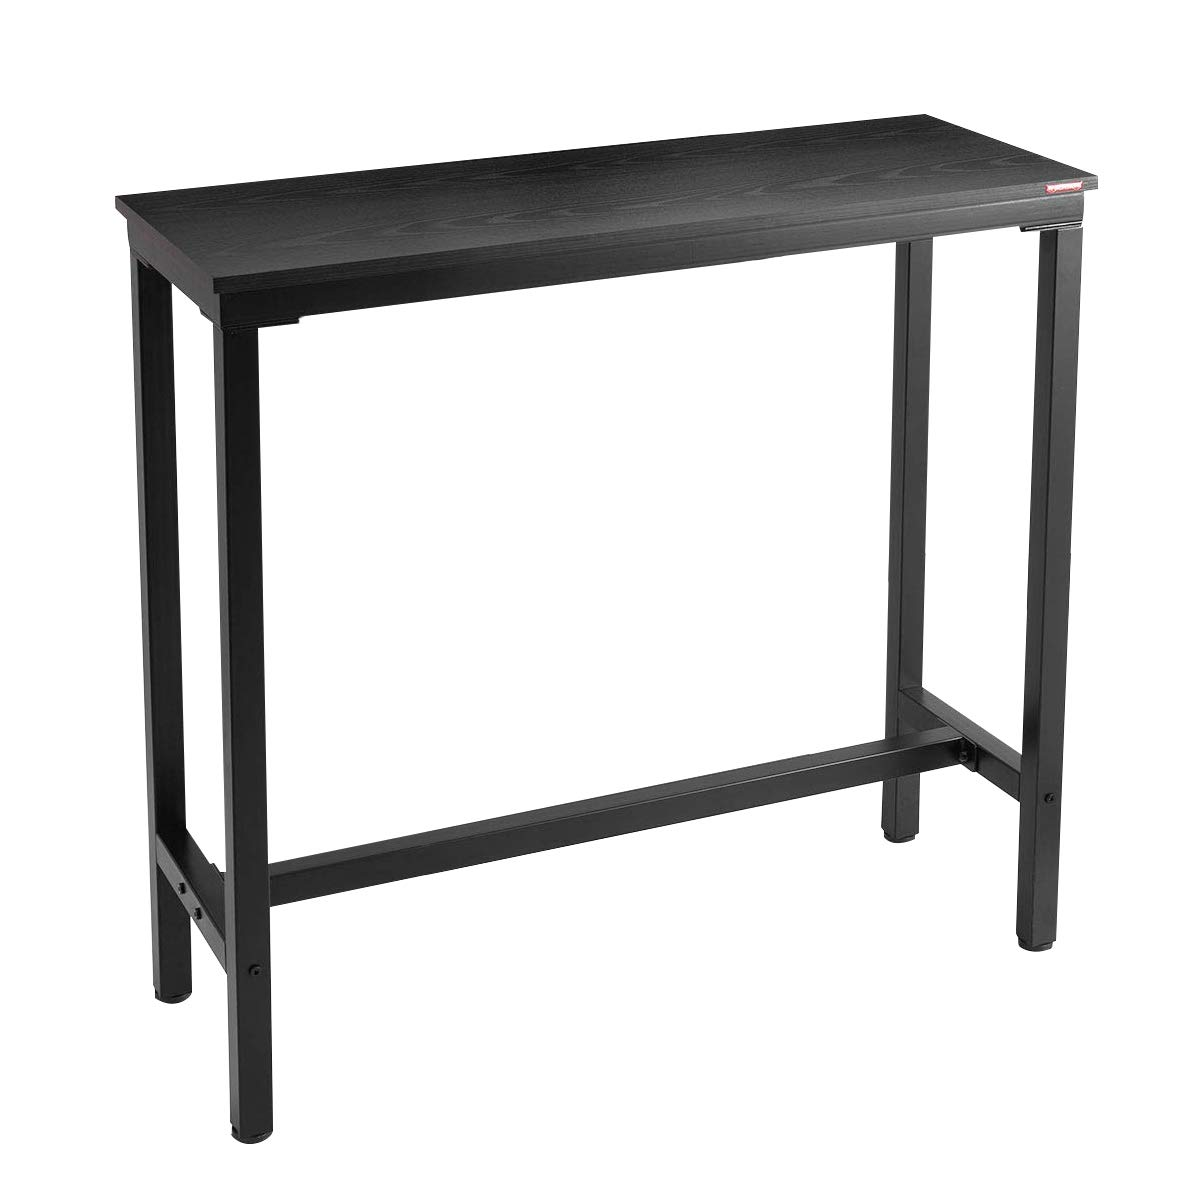 Mr IRONSTONE 39.4'' Bar Table Pub Dining Height Table Black Bistro Table (Indoor USE ONLY) by Mr IRONSTONE